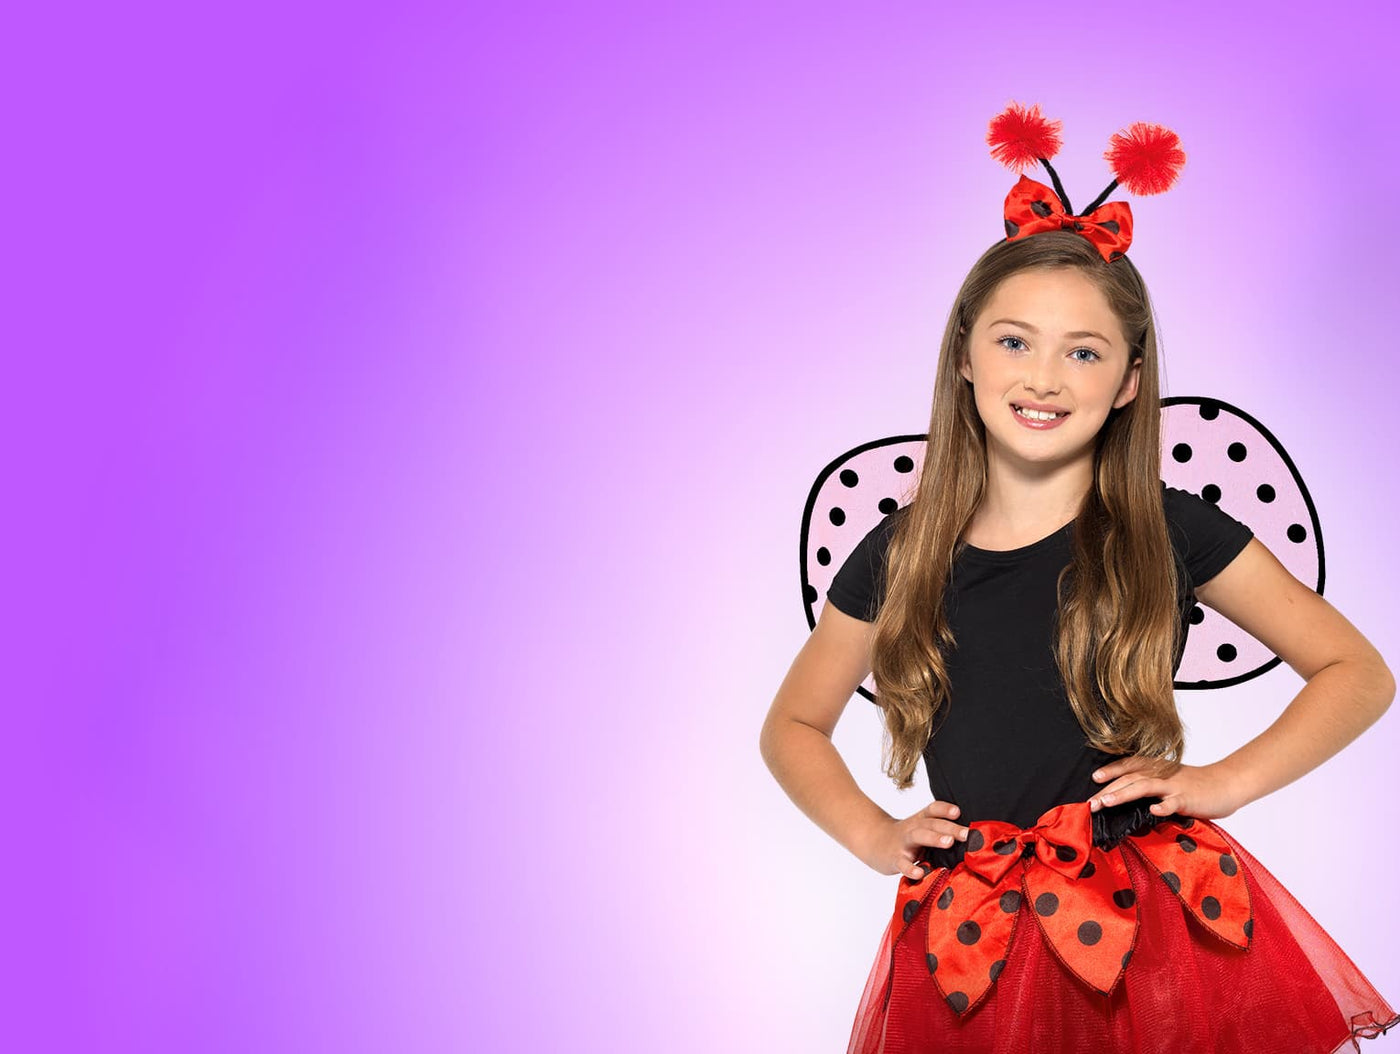 ba001e3463e36 Fancy Dress Costumes for all Occasions | Smiffys